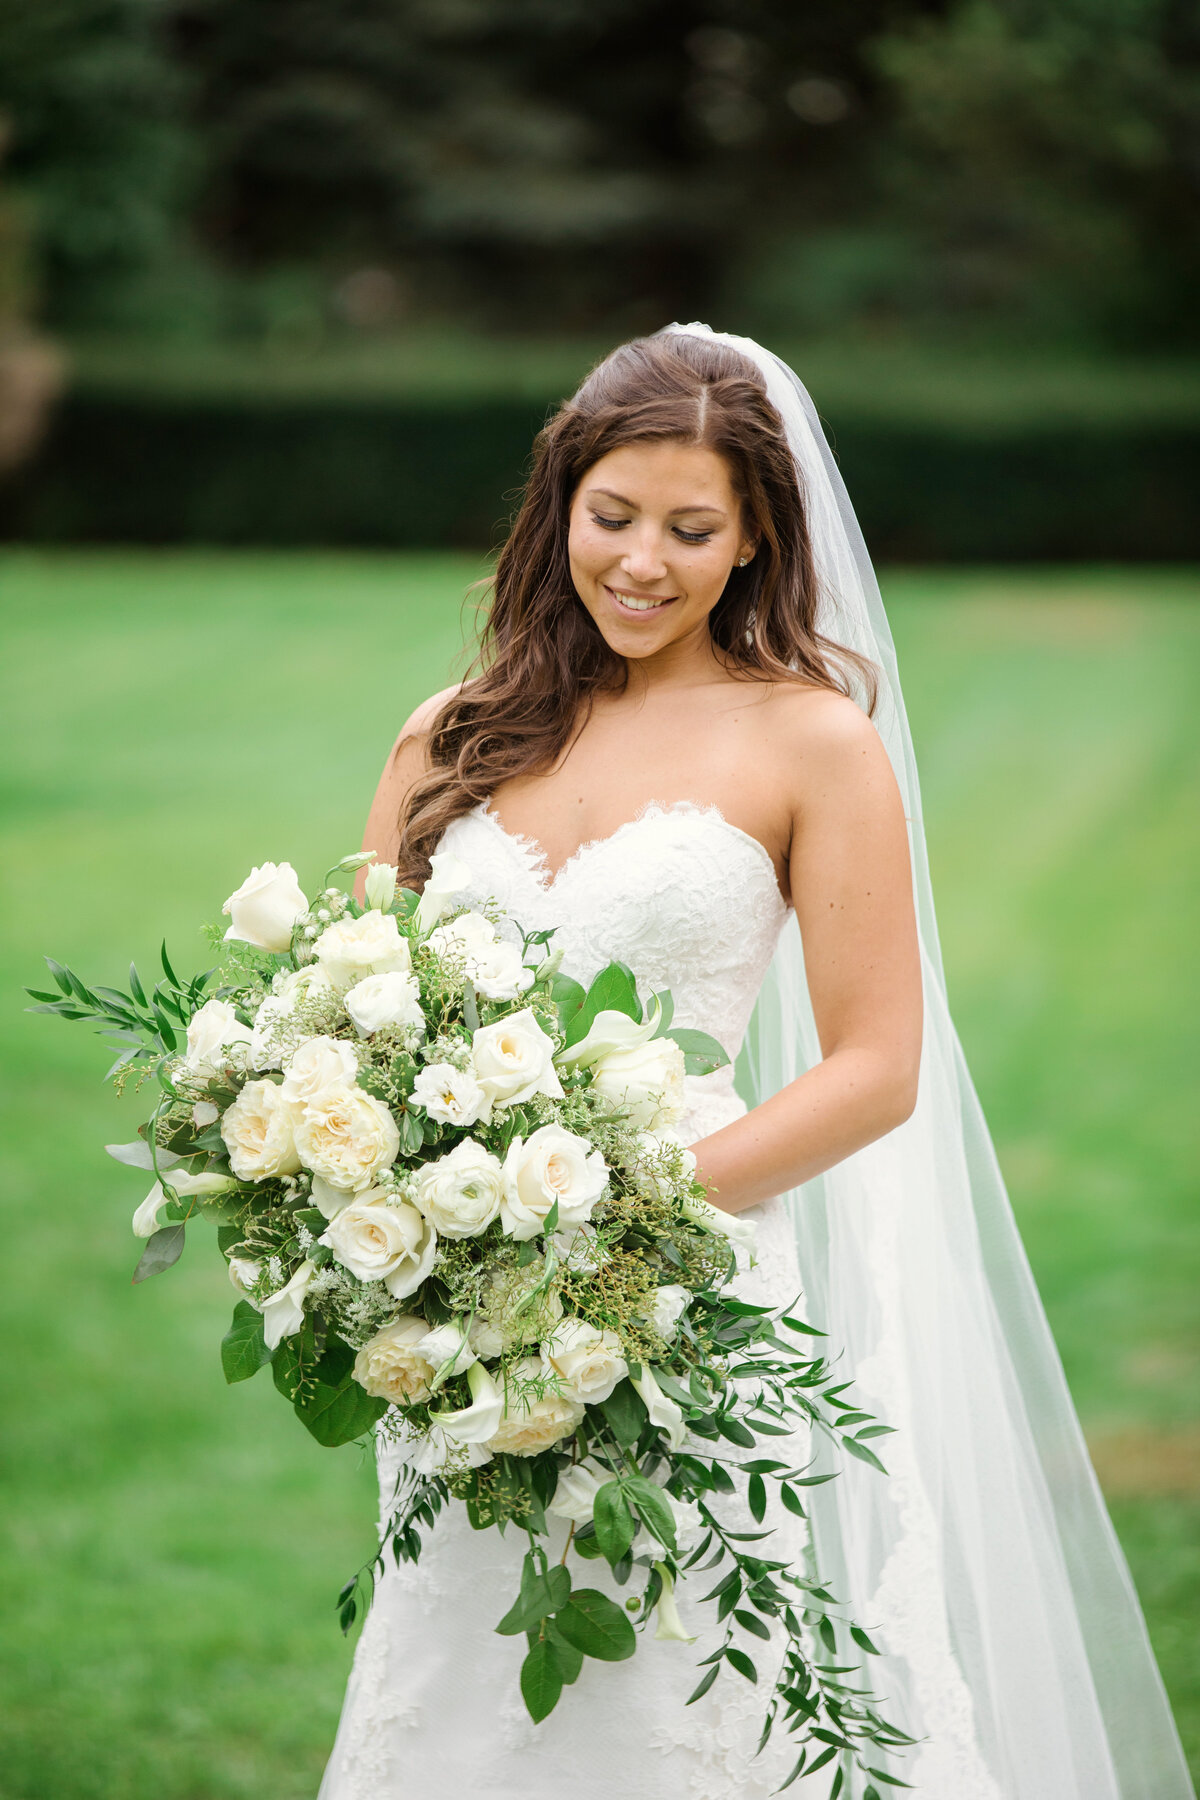 photo of bride looking down at bouquet from wedding at The Carltun